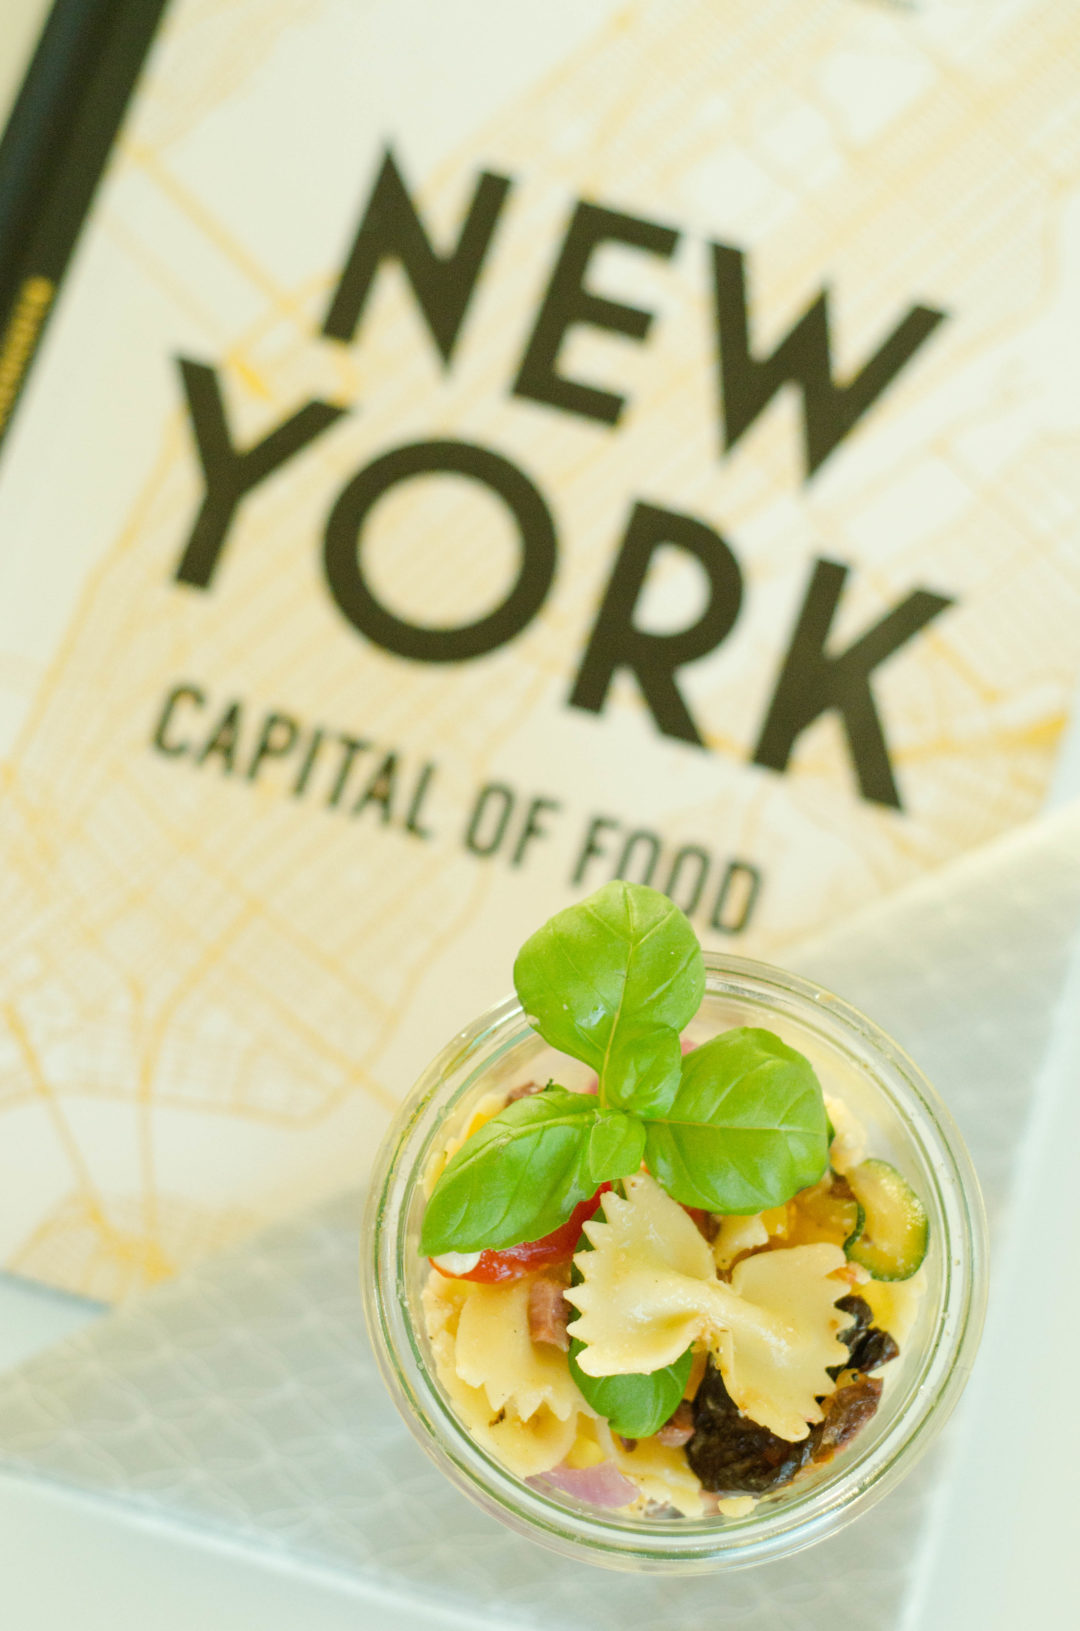 Frau Piepenkoetter I New York Capital of food